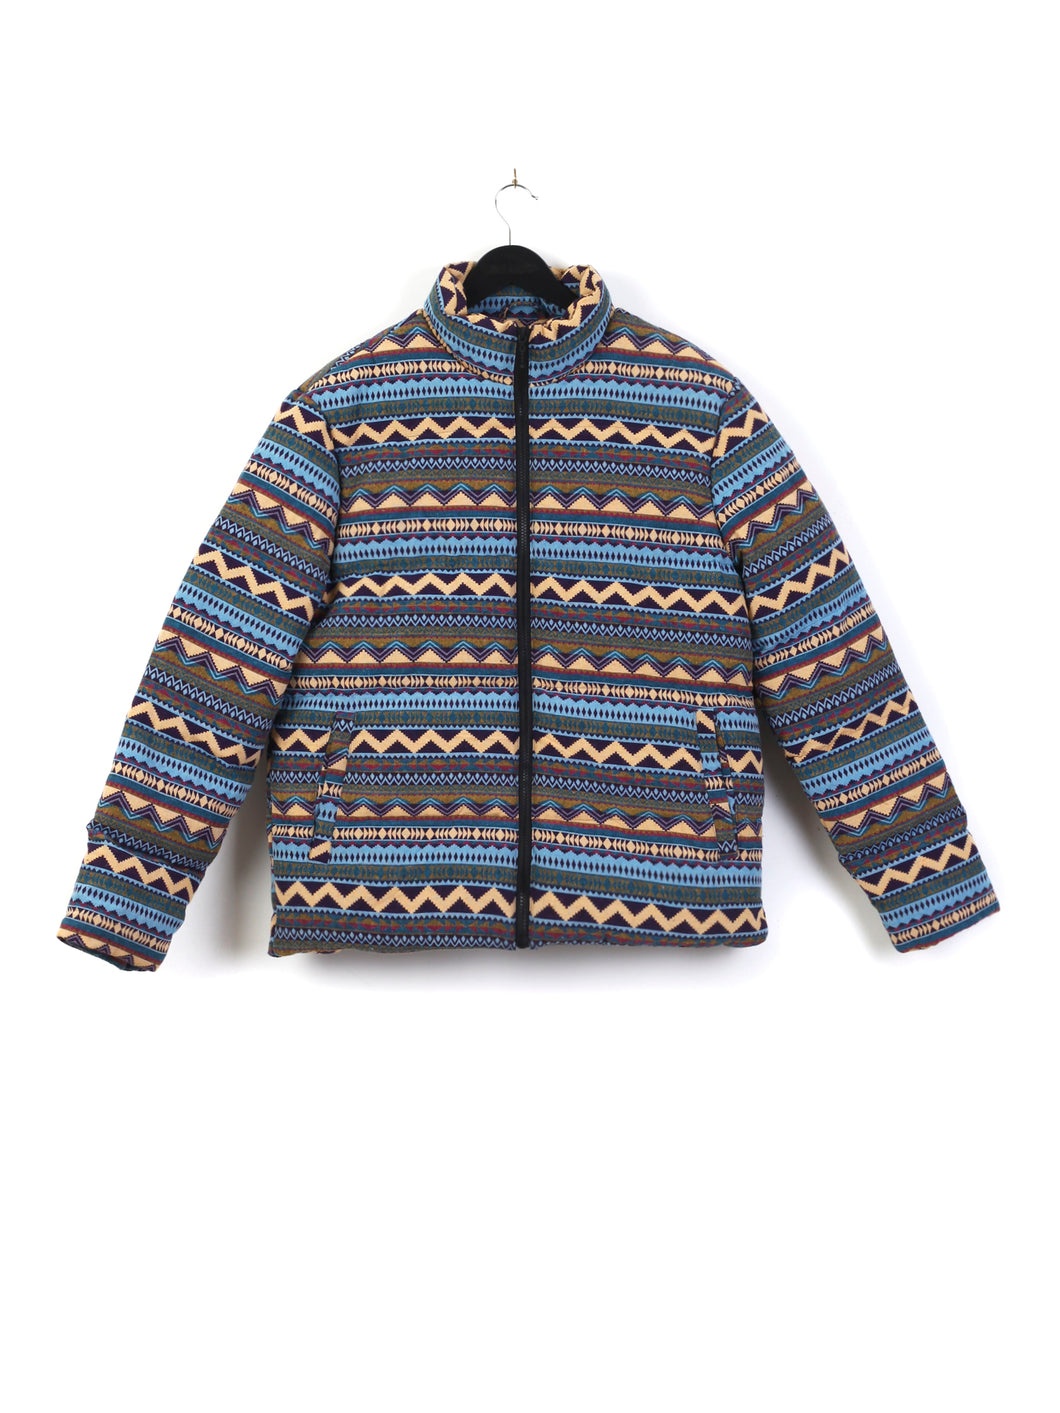 OVERSIZED PUFFER JACKET - TAPESTRY